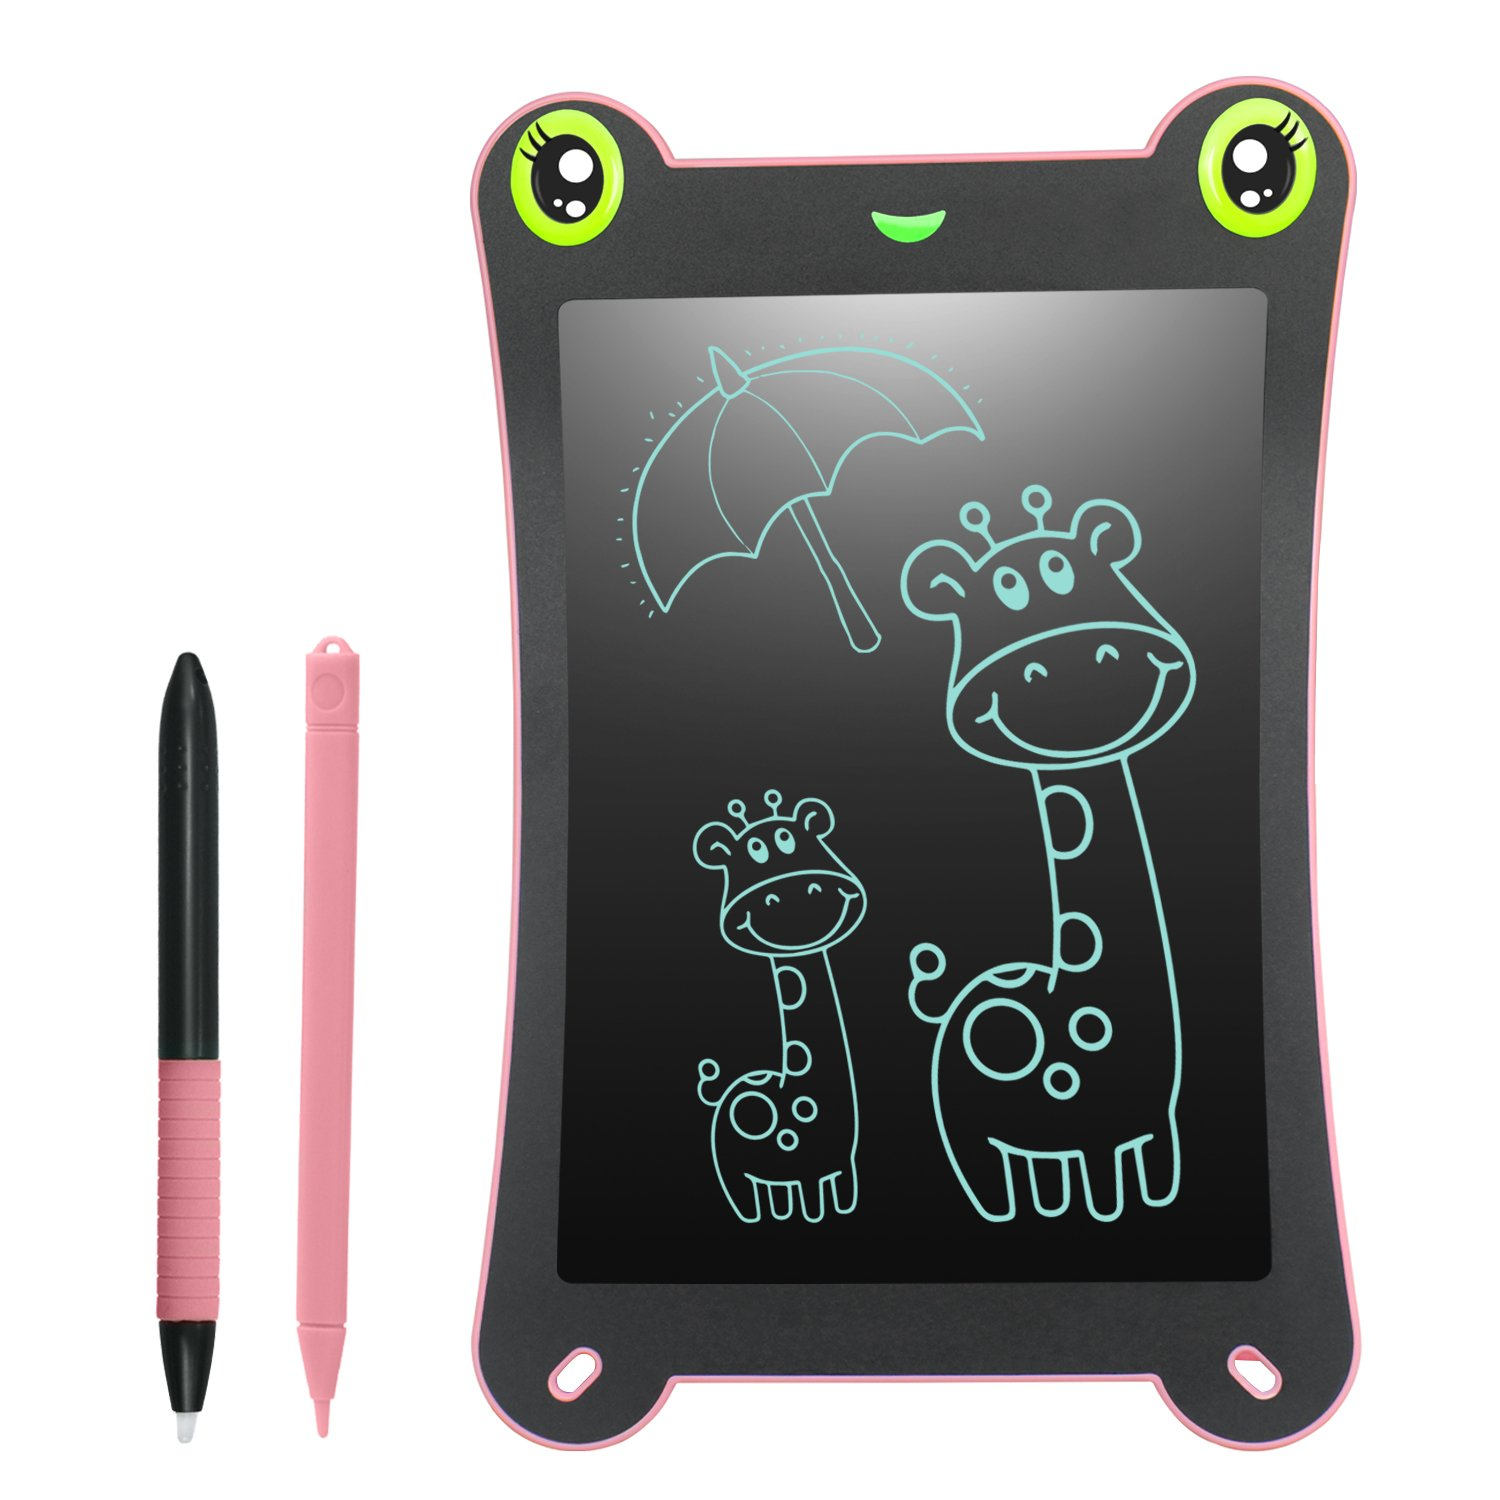 LCD Writing Tablet Frog Pad WOBEECO Children Doodle Pad Scribble Game Magnetic Drawing Board Kid's Fun Toy Smart Learning Tool 2 Styluses Included (Pink)